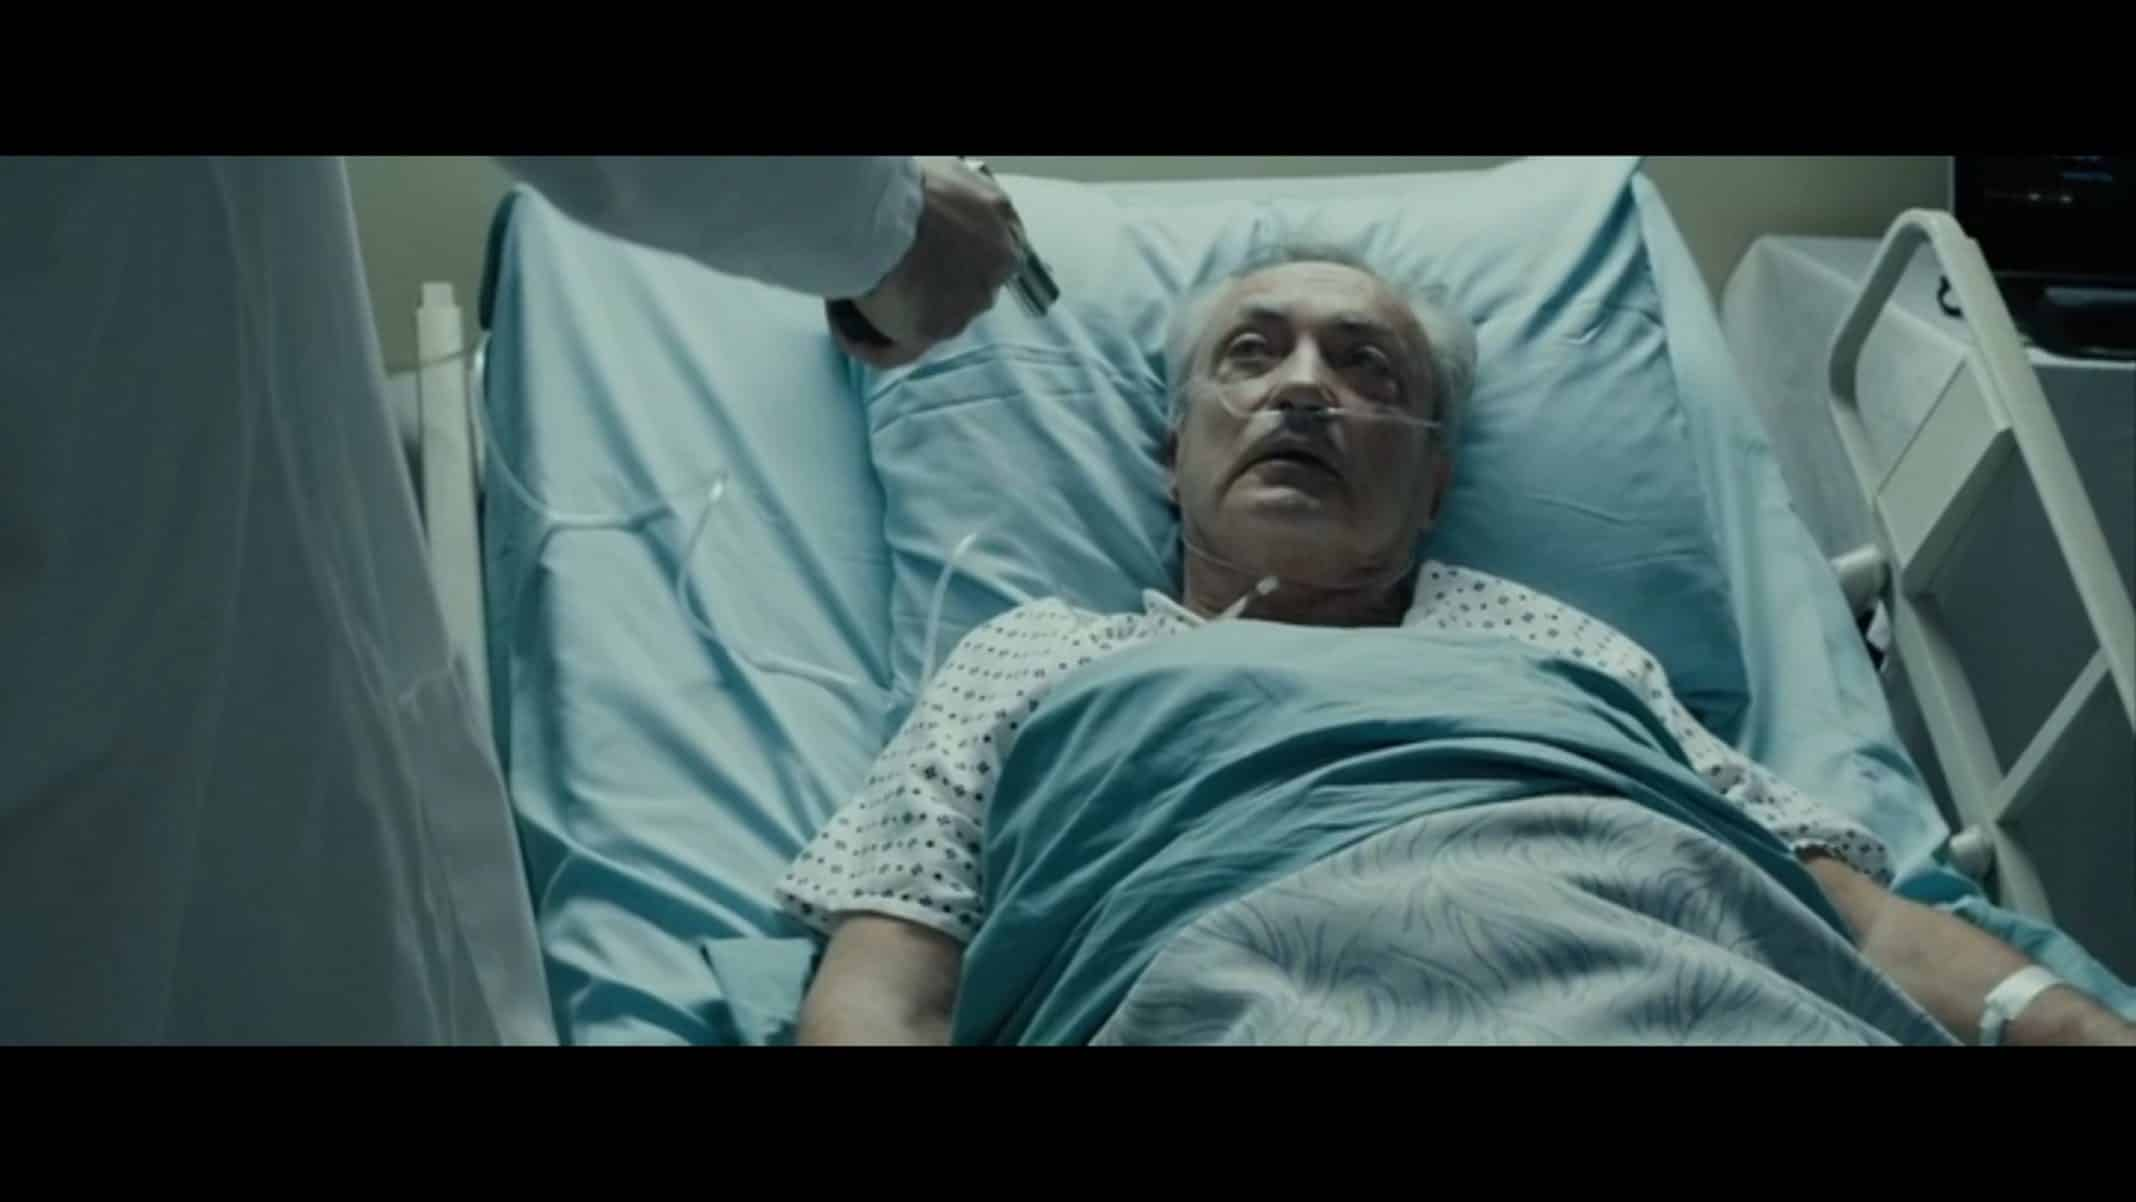 Ivan (Udo Kier) in a hospital bed.